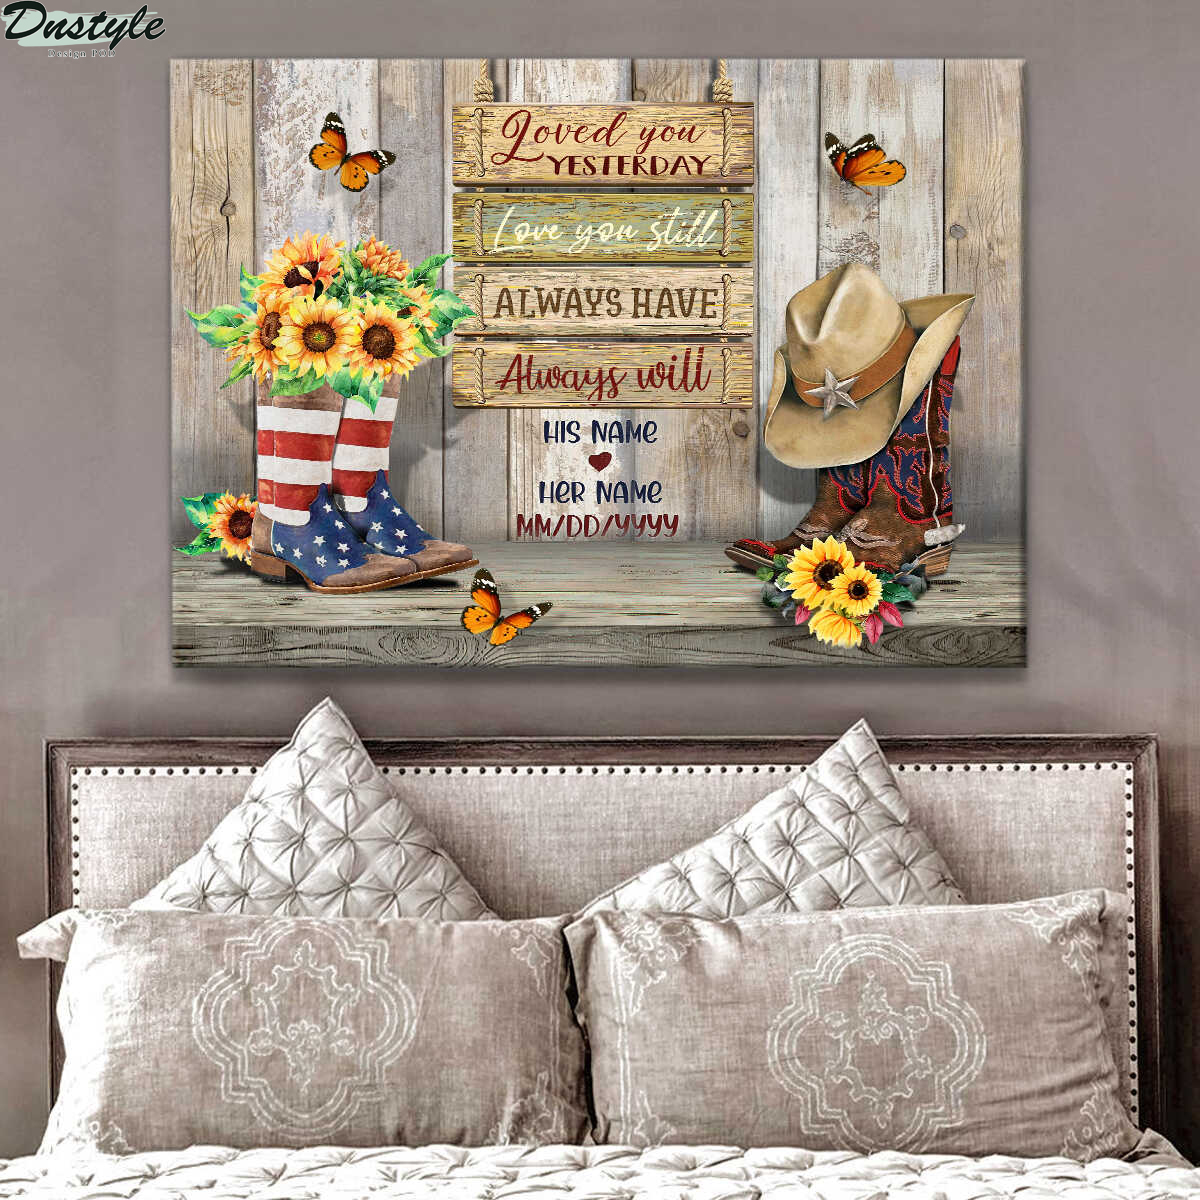 Personalized wedding anniversary love you yesterday love you still canvas 1